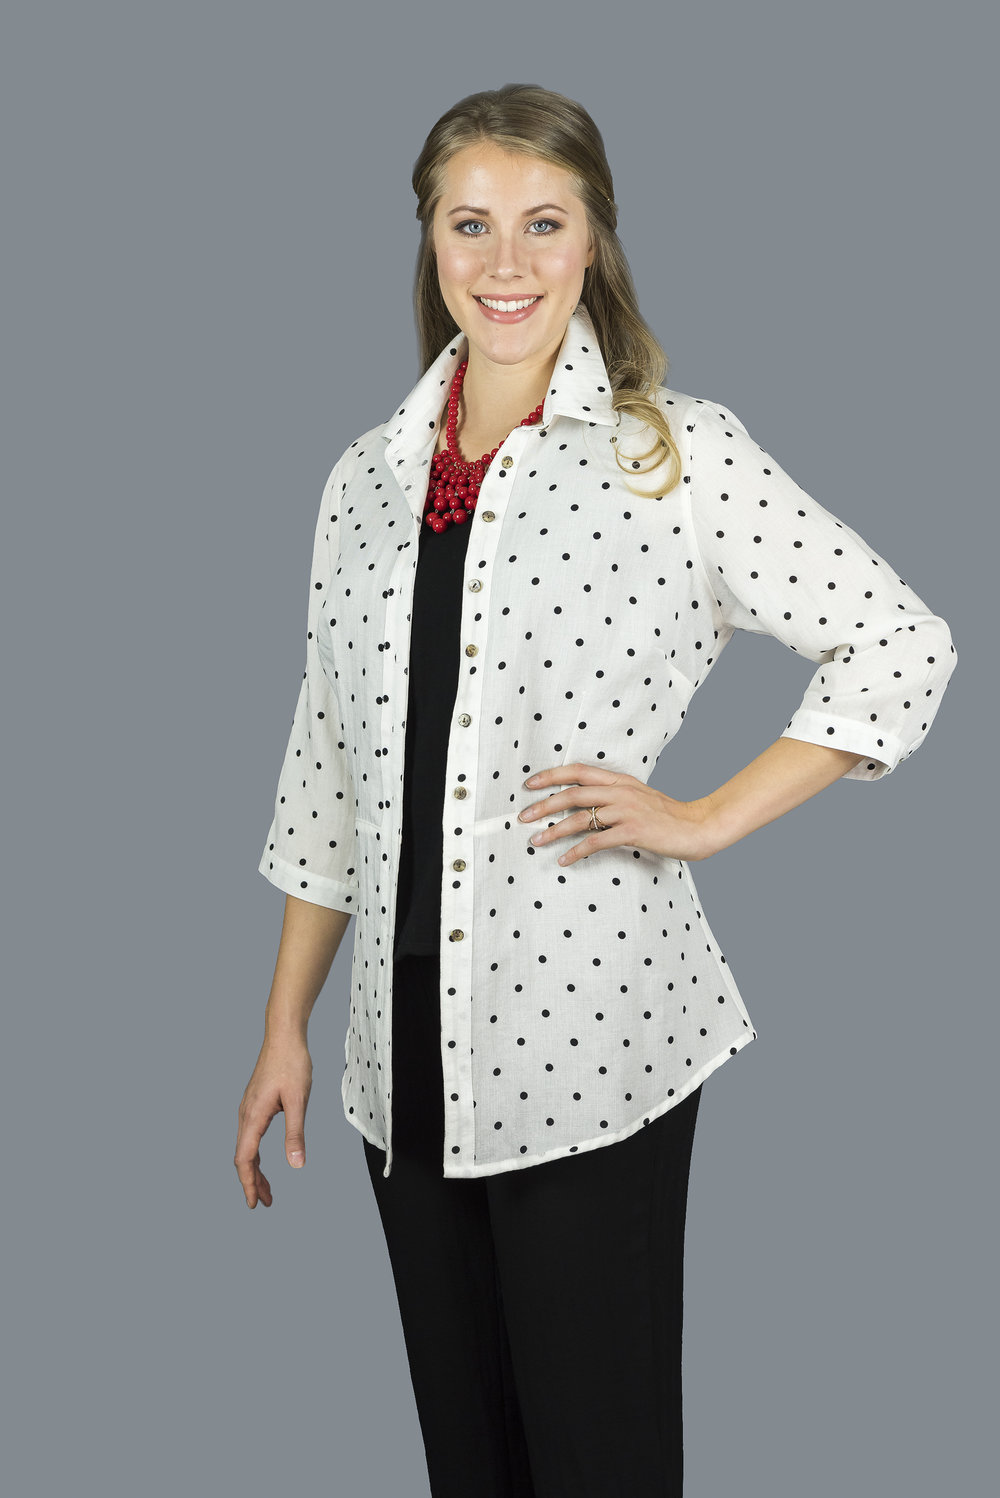 AA138 - Connie's Shirt    CL388D - White with Black Polka Dots